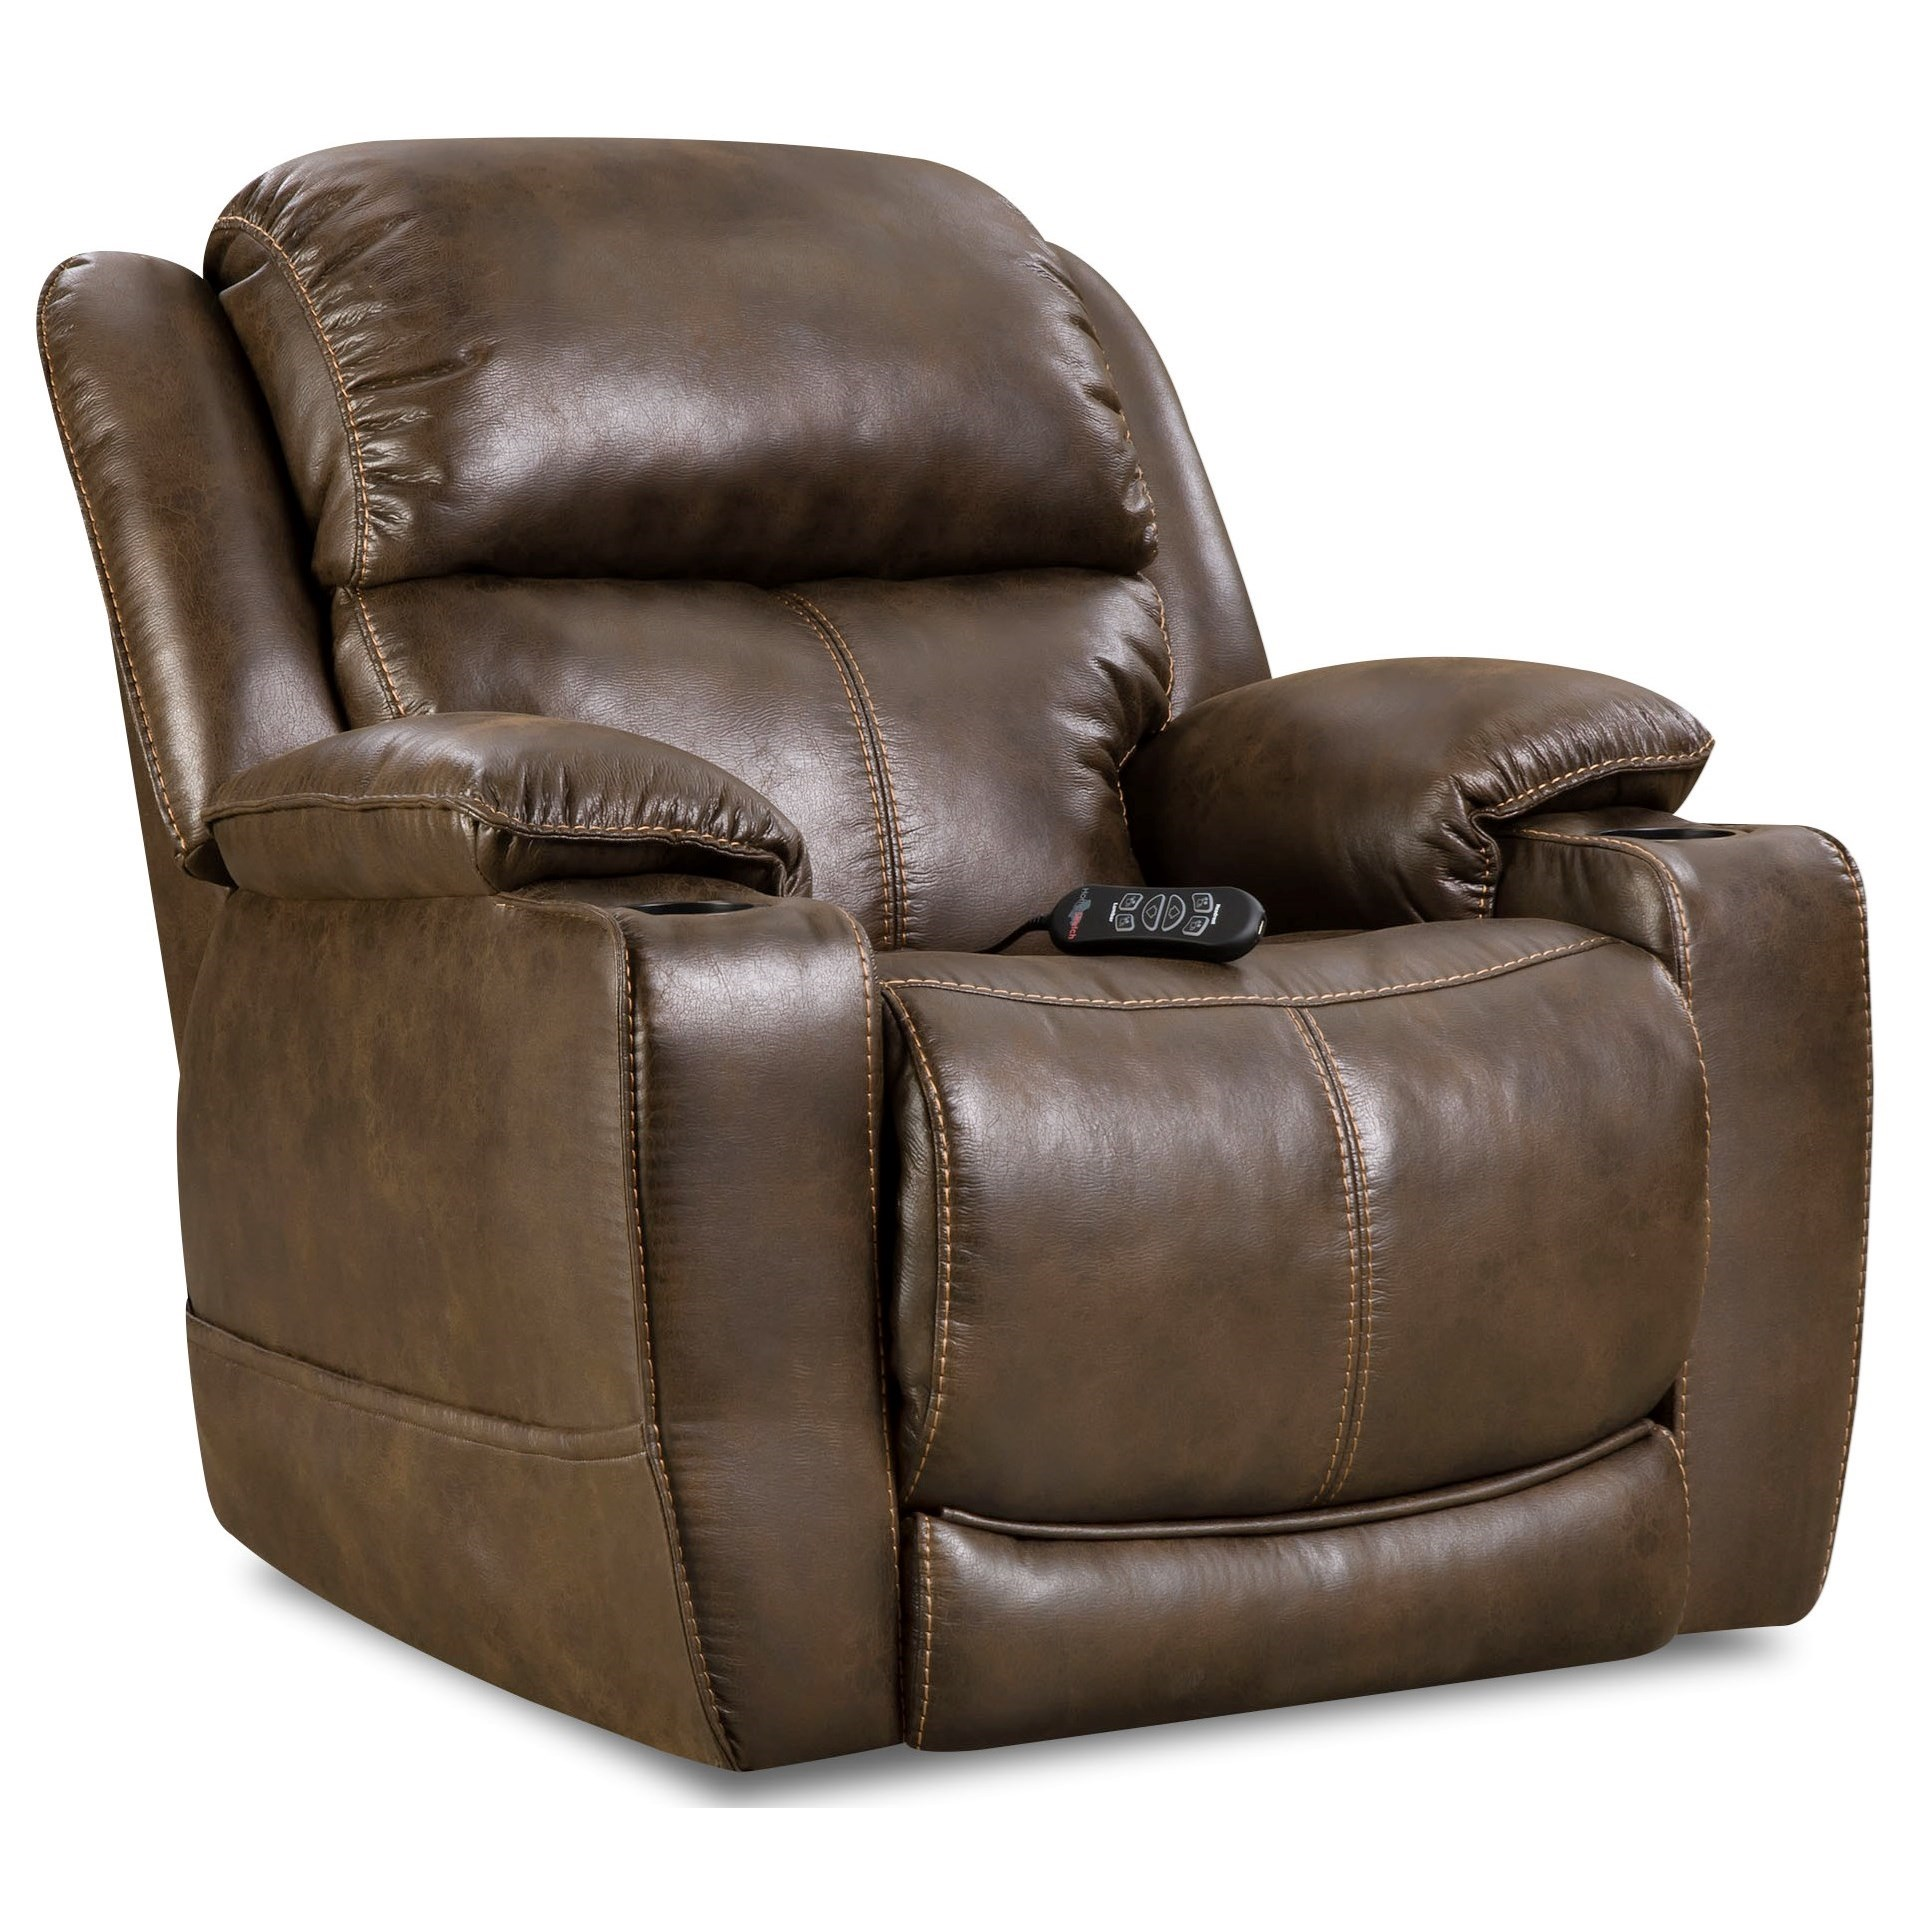 HomeStretch Starship Home Theater Recliner - Item Number: 161-97-21